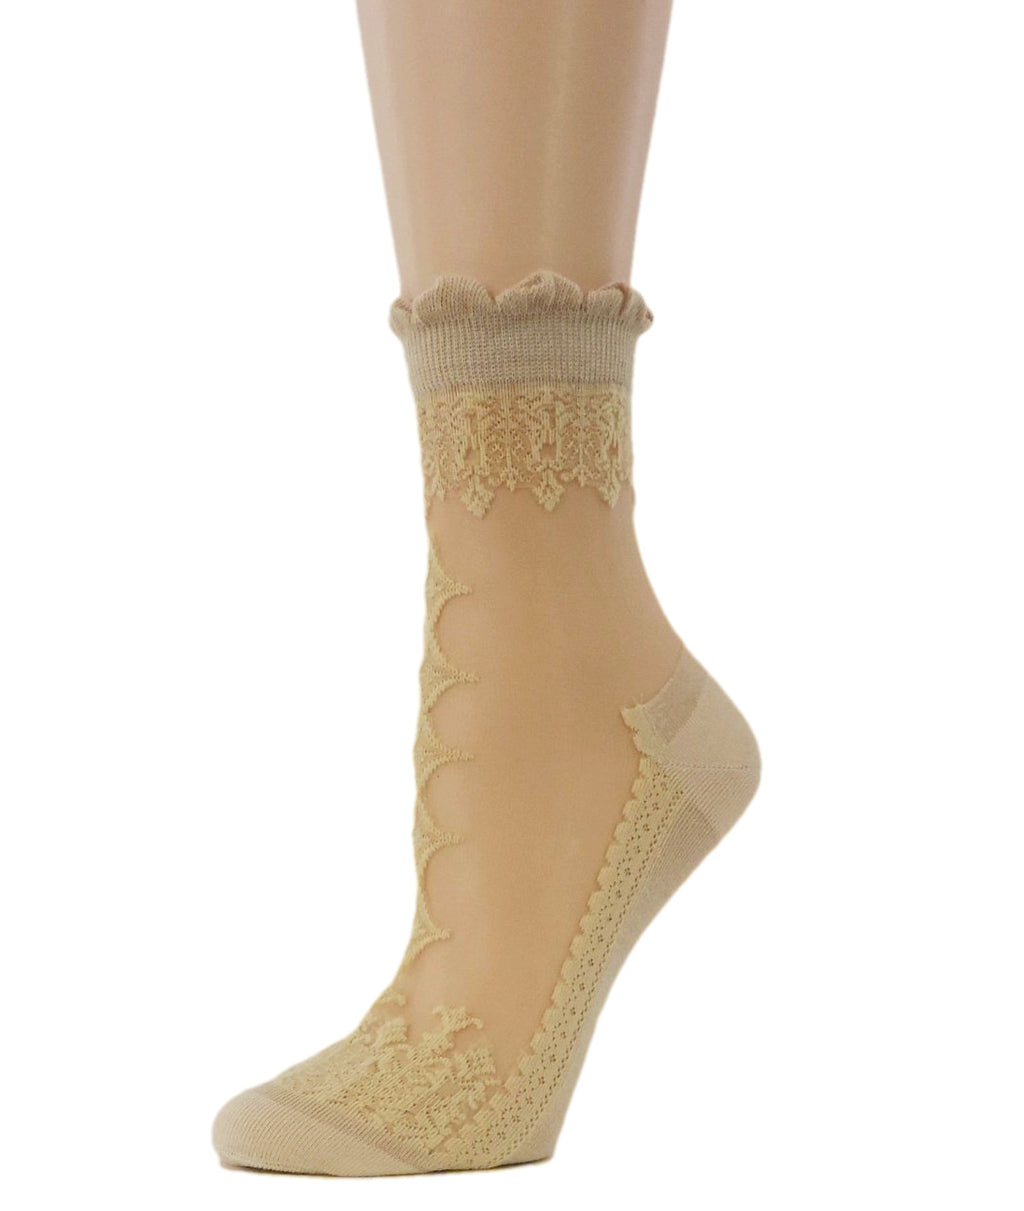 Elegant Beige Sheer Socks - Global Trendz Fashion®